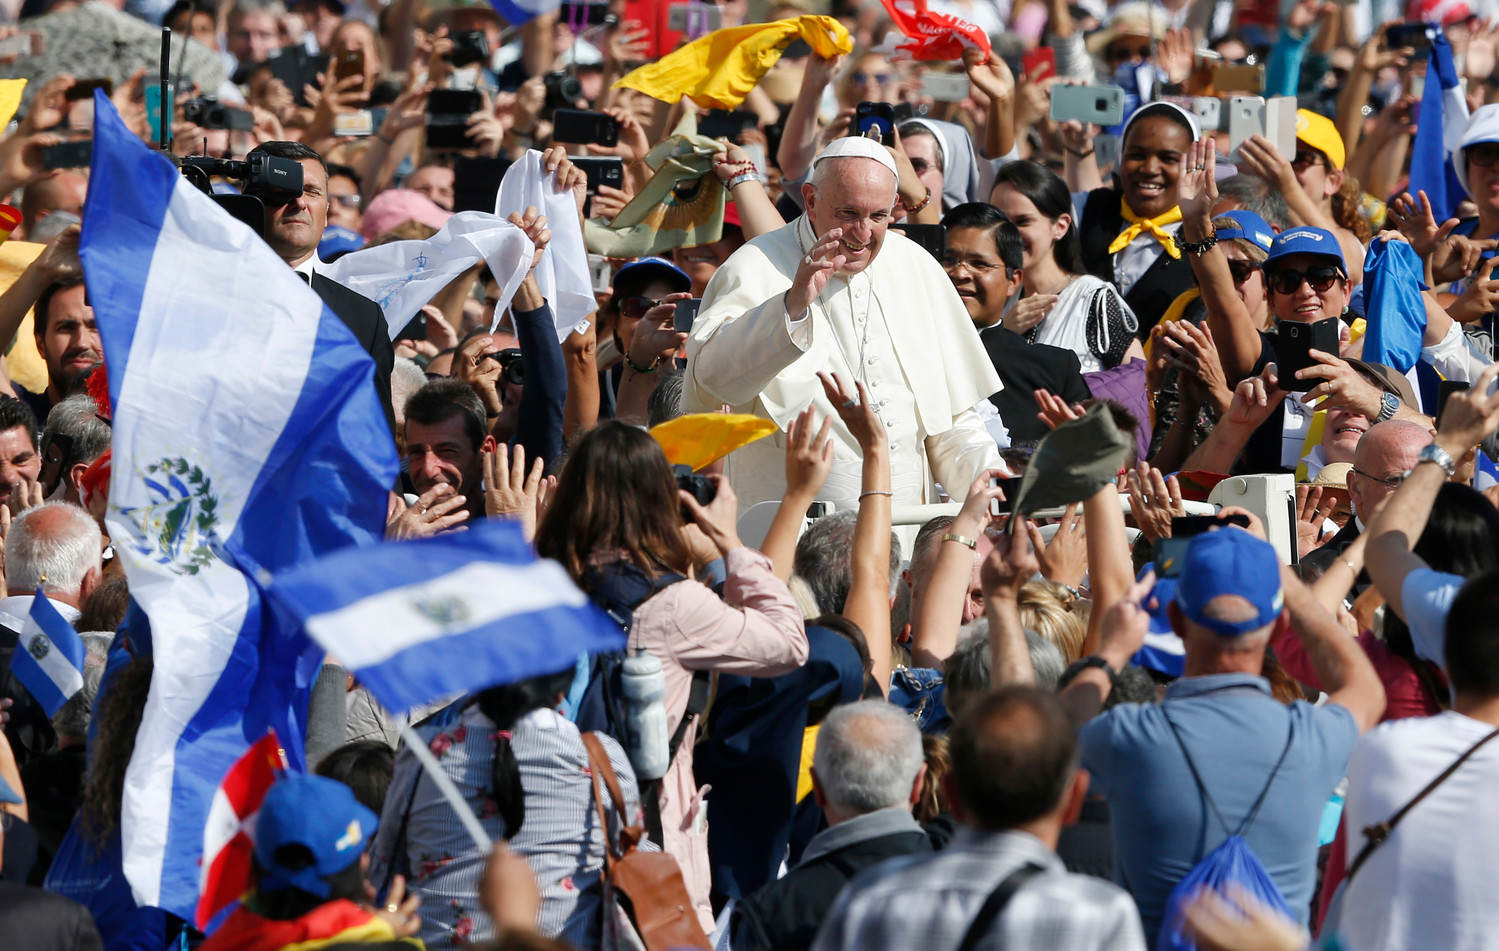 Pope Francis greets the crowd after celebrating the canonization Mass for seven new saints in St. Peter's Square at the Vatican Oct. 14. Among those canonized were Pope St. Paul VI and St. Oscar Romero.